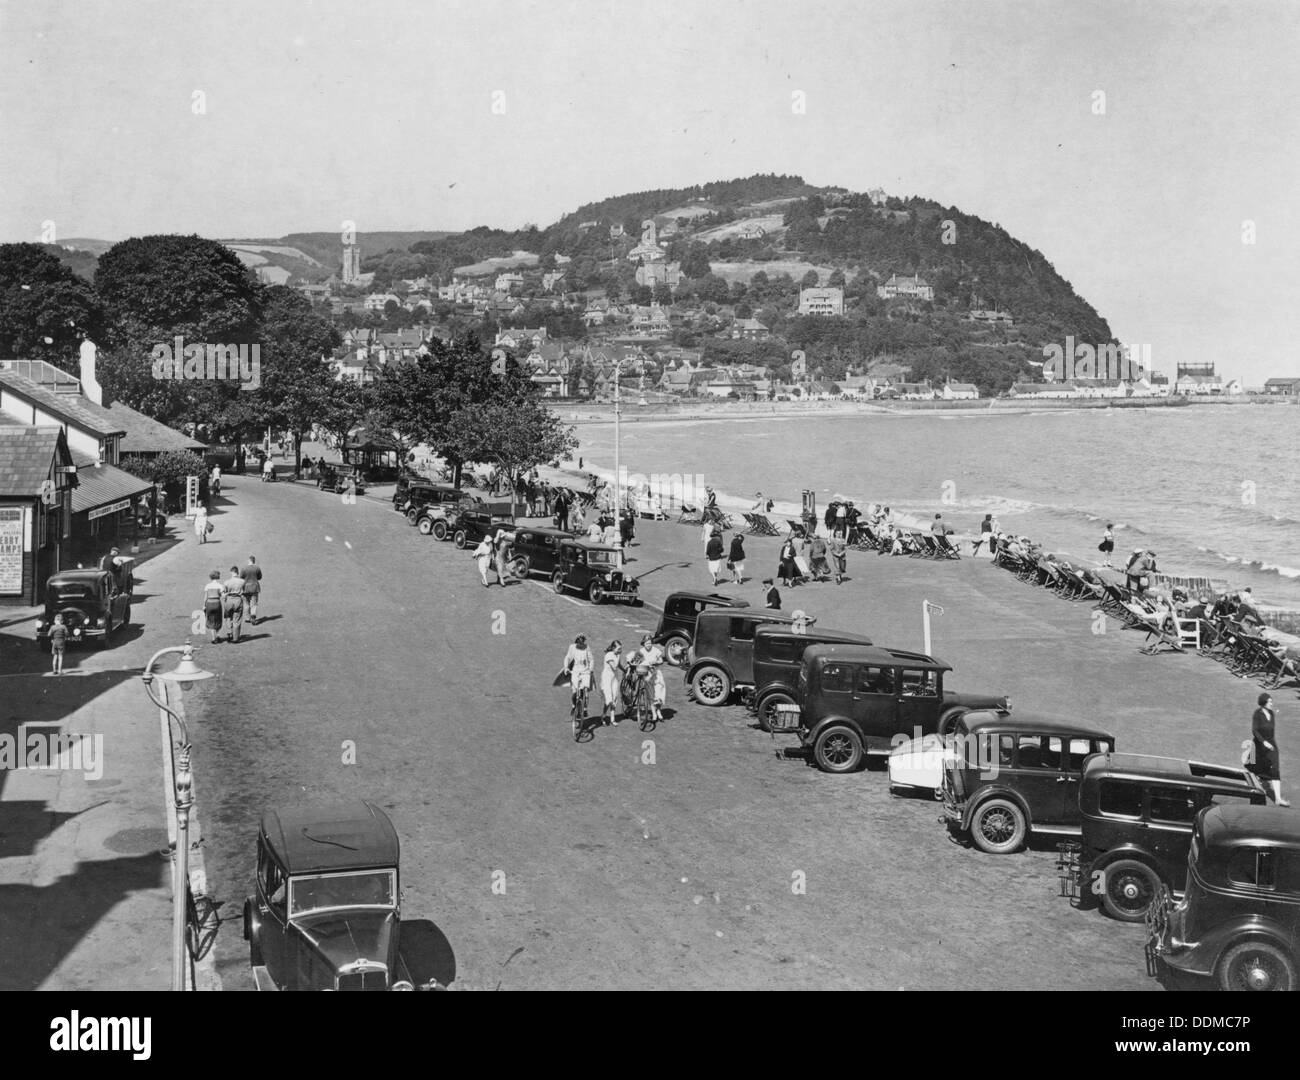 Seaside resort of Minehead, Somerset, early 1930s. - Stock Image